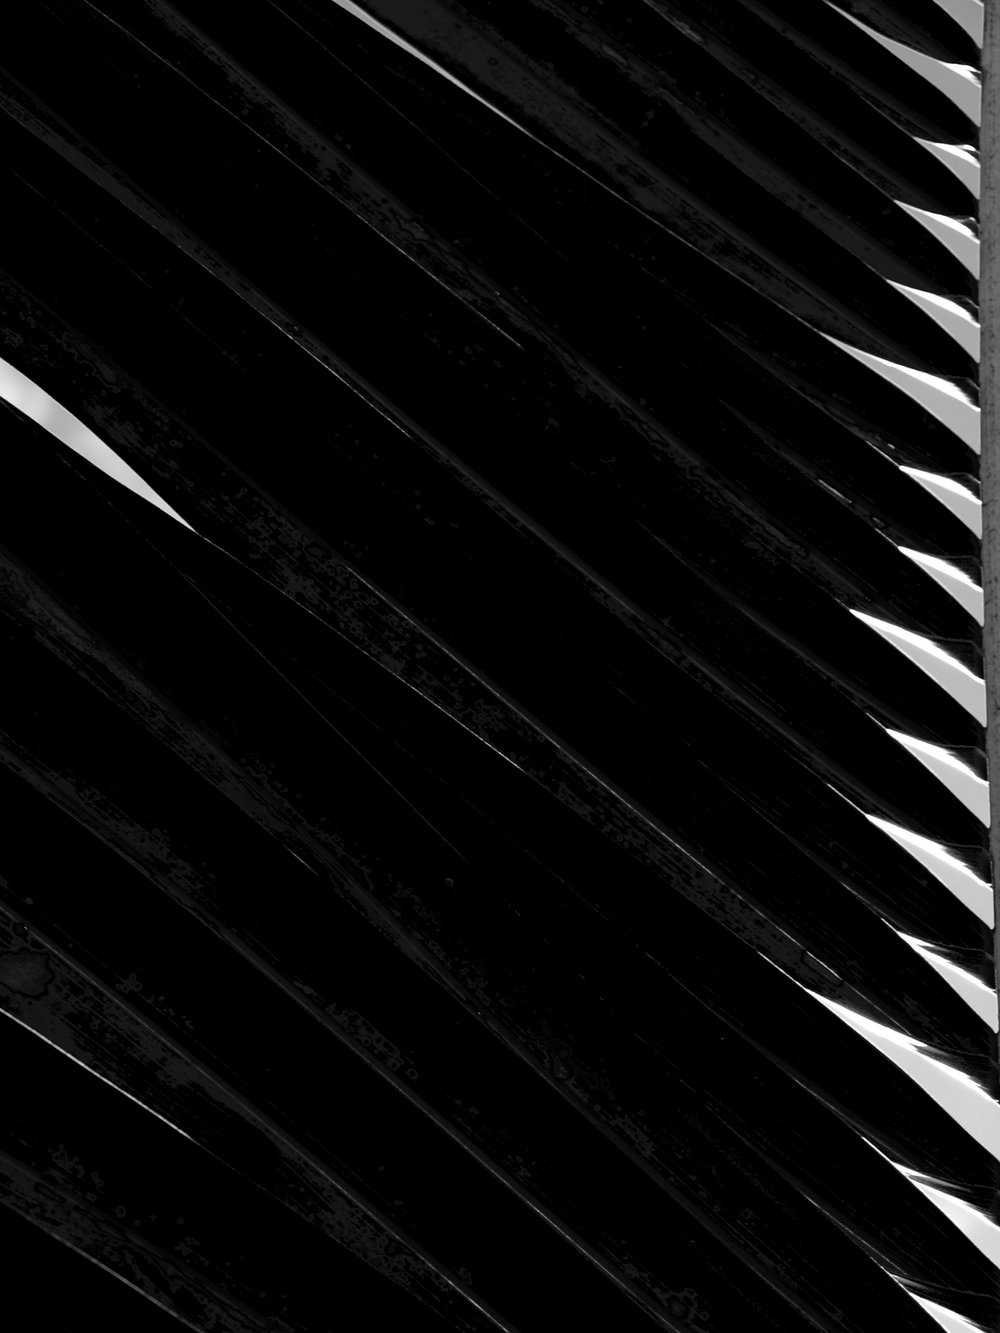 abstract black and white leaf photograph